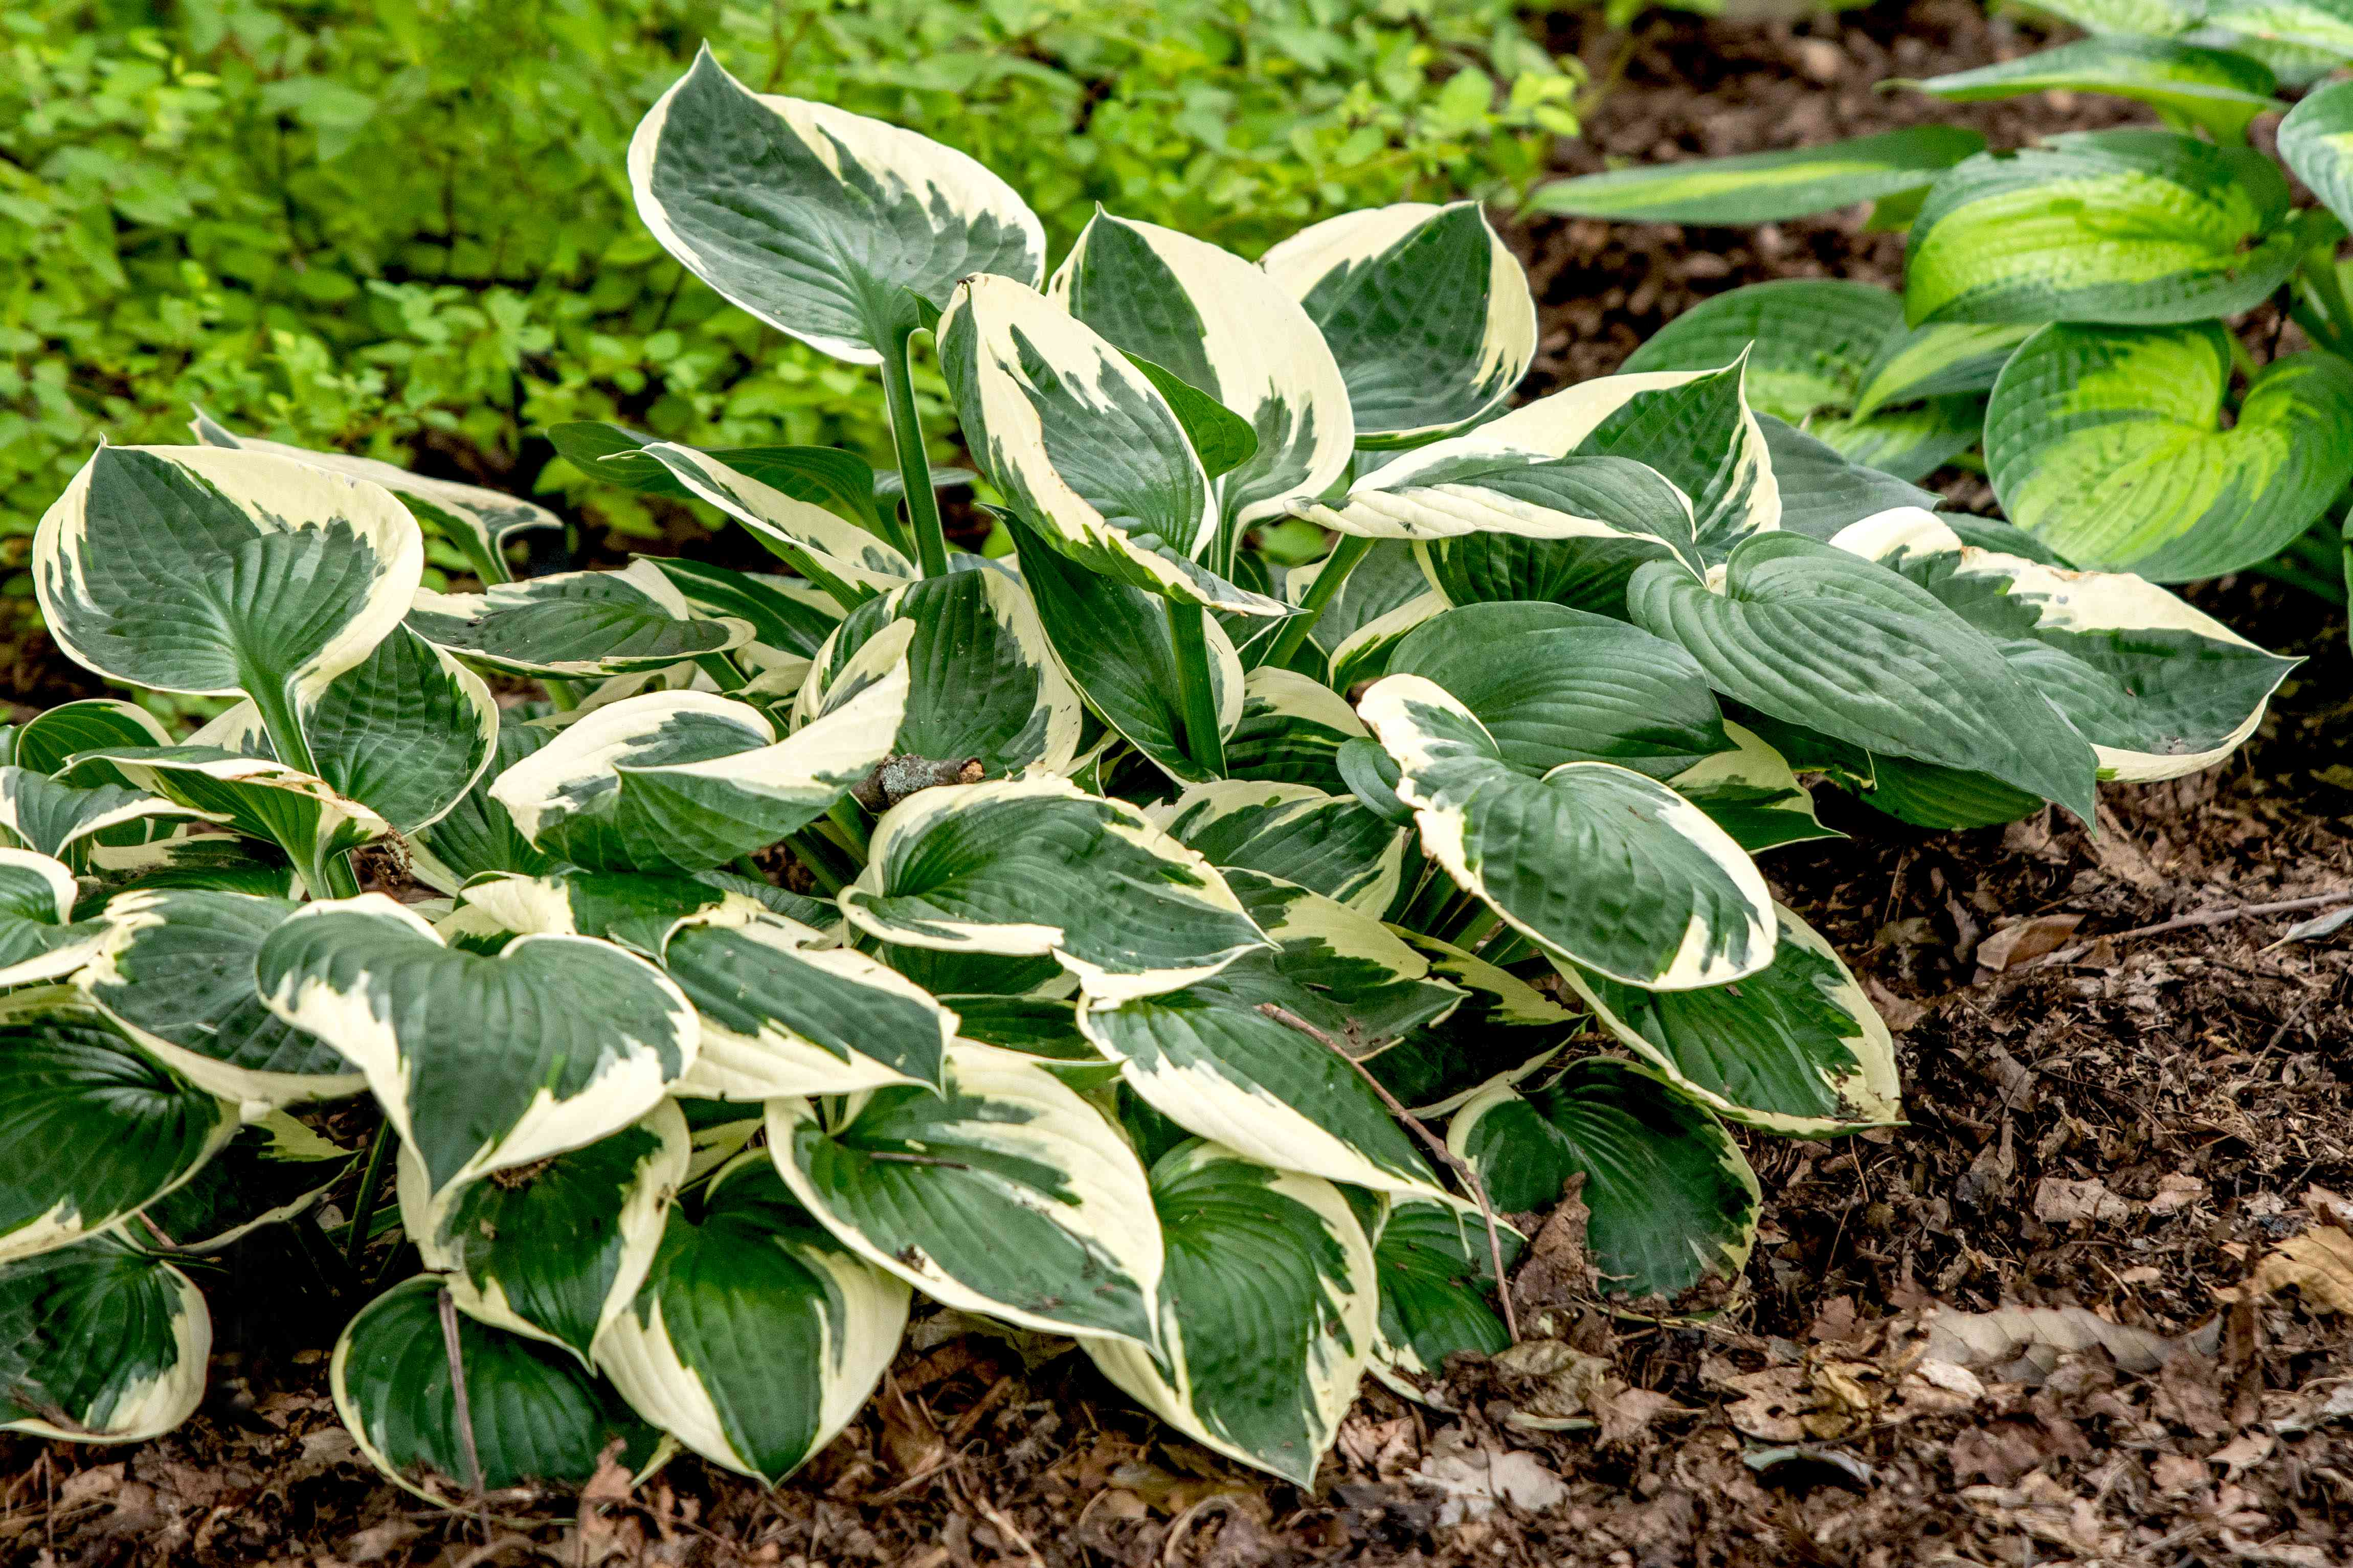 Patriot hosta plant with rounded leaves clumped together with white edges